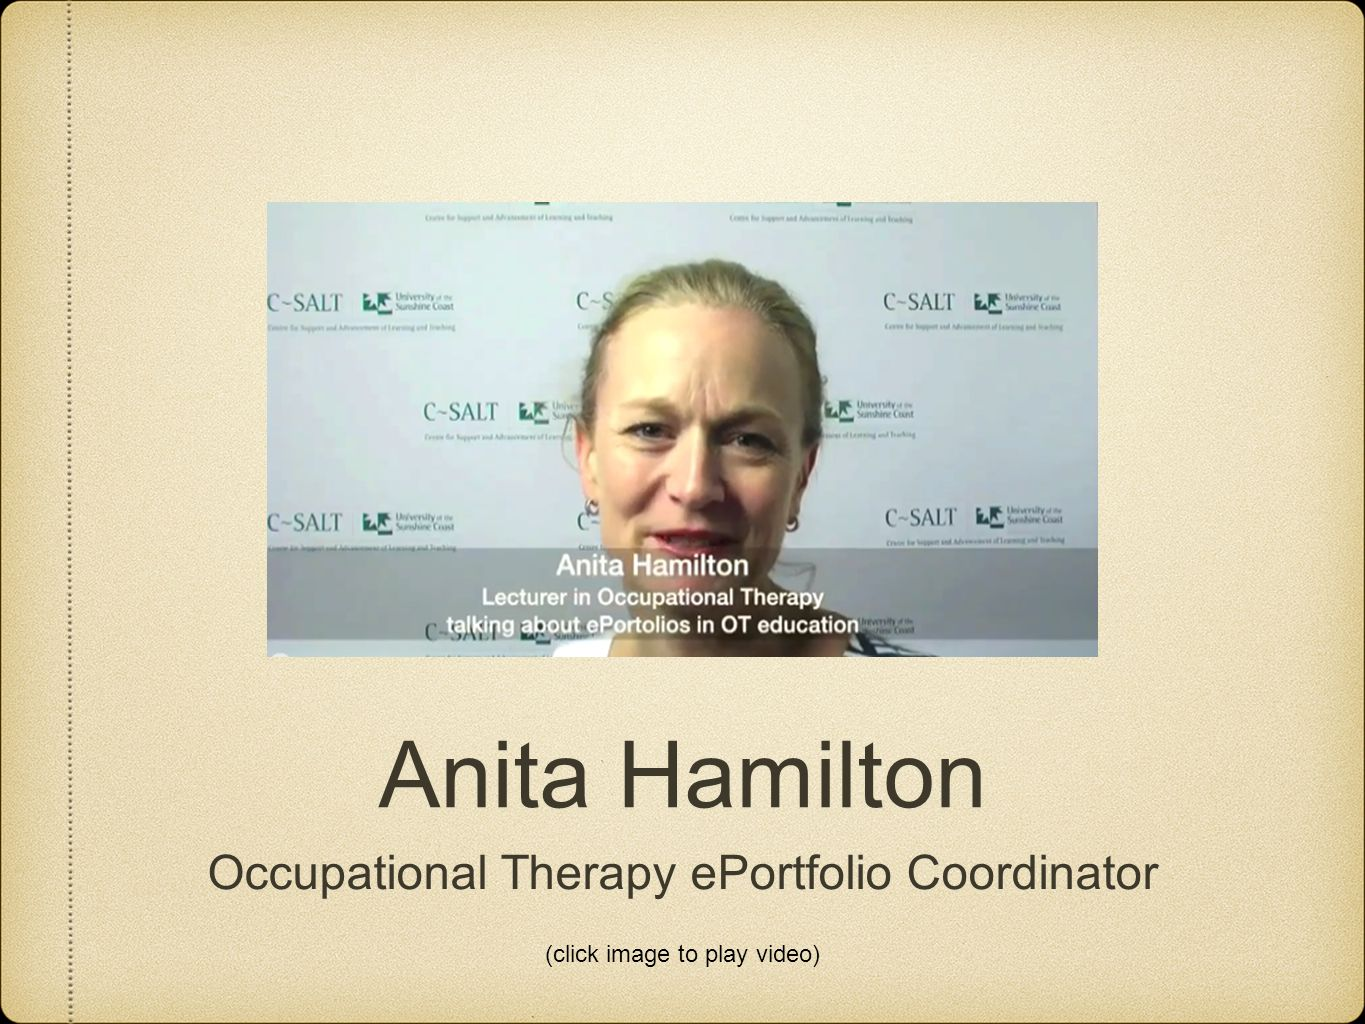 Anita Hamilton Occupational Therapy ePortfolio Coordinator (click image to play video)